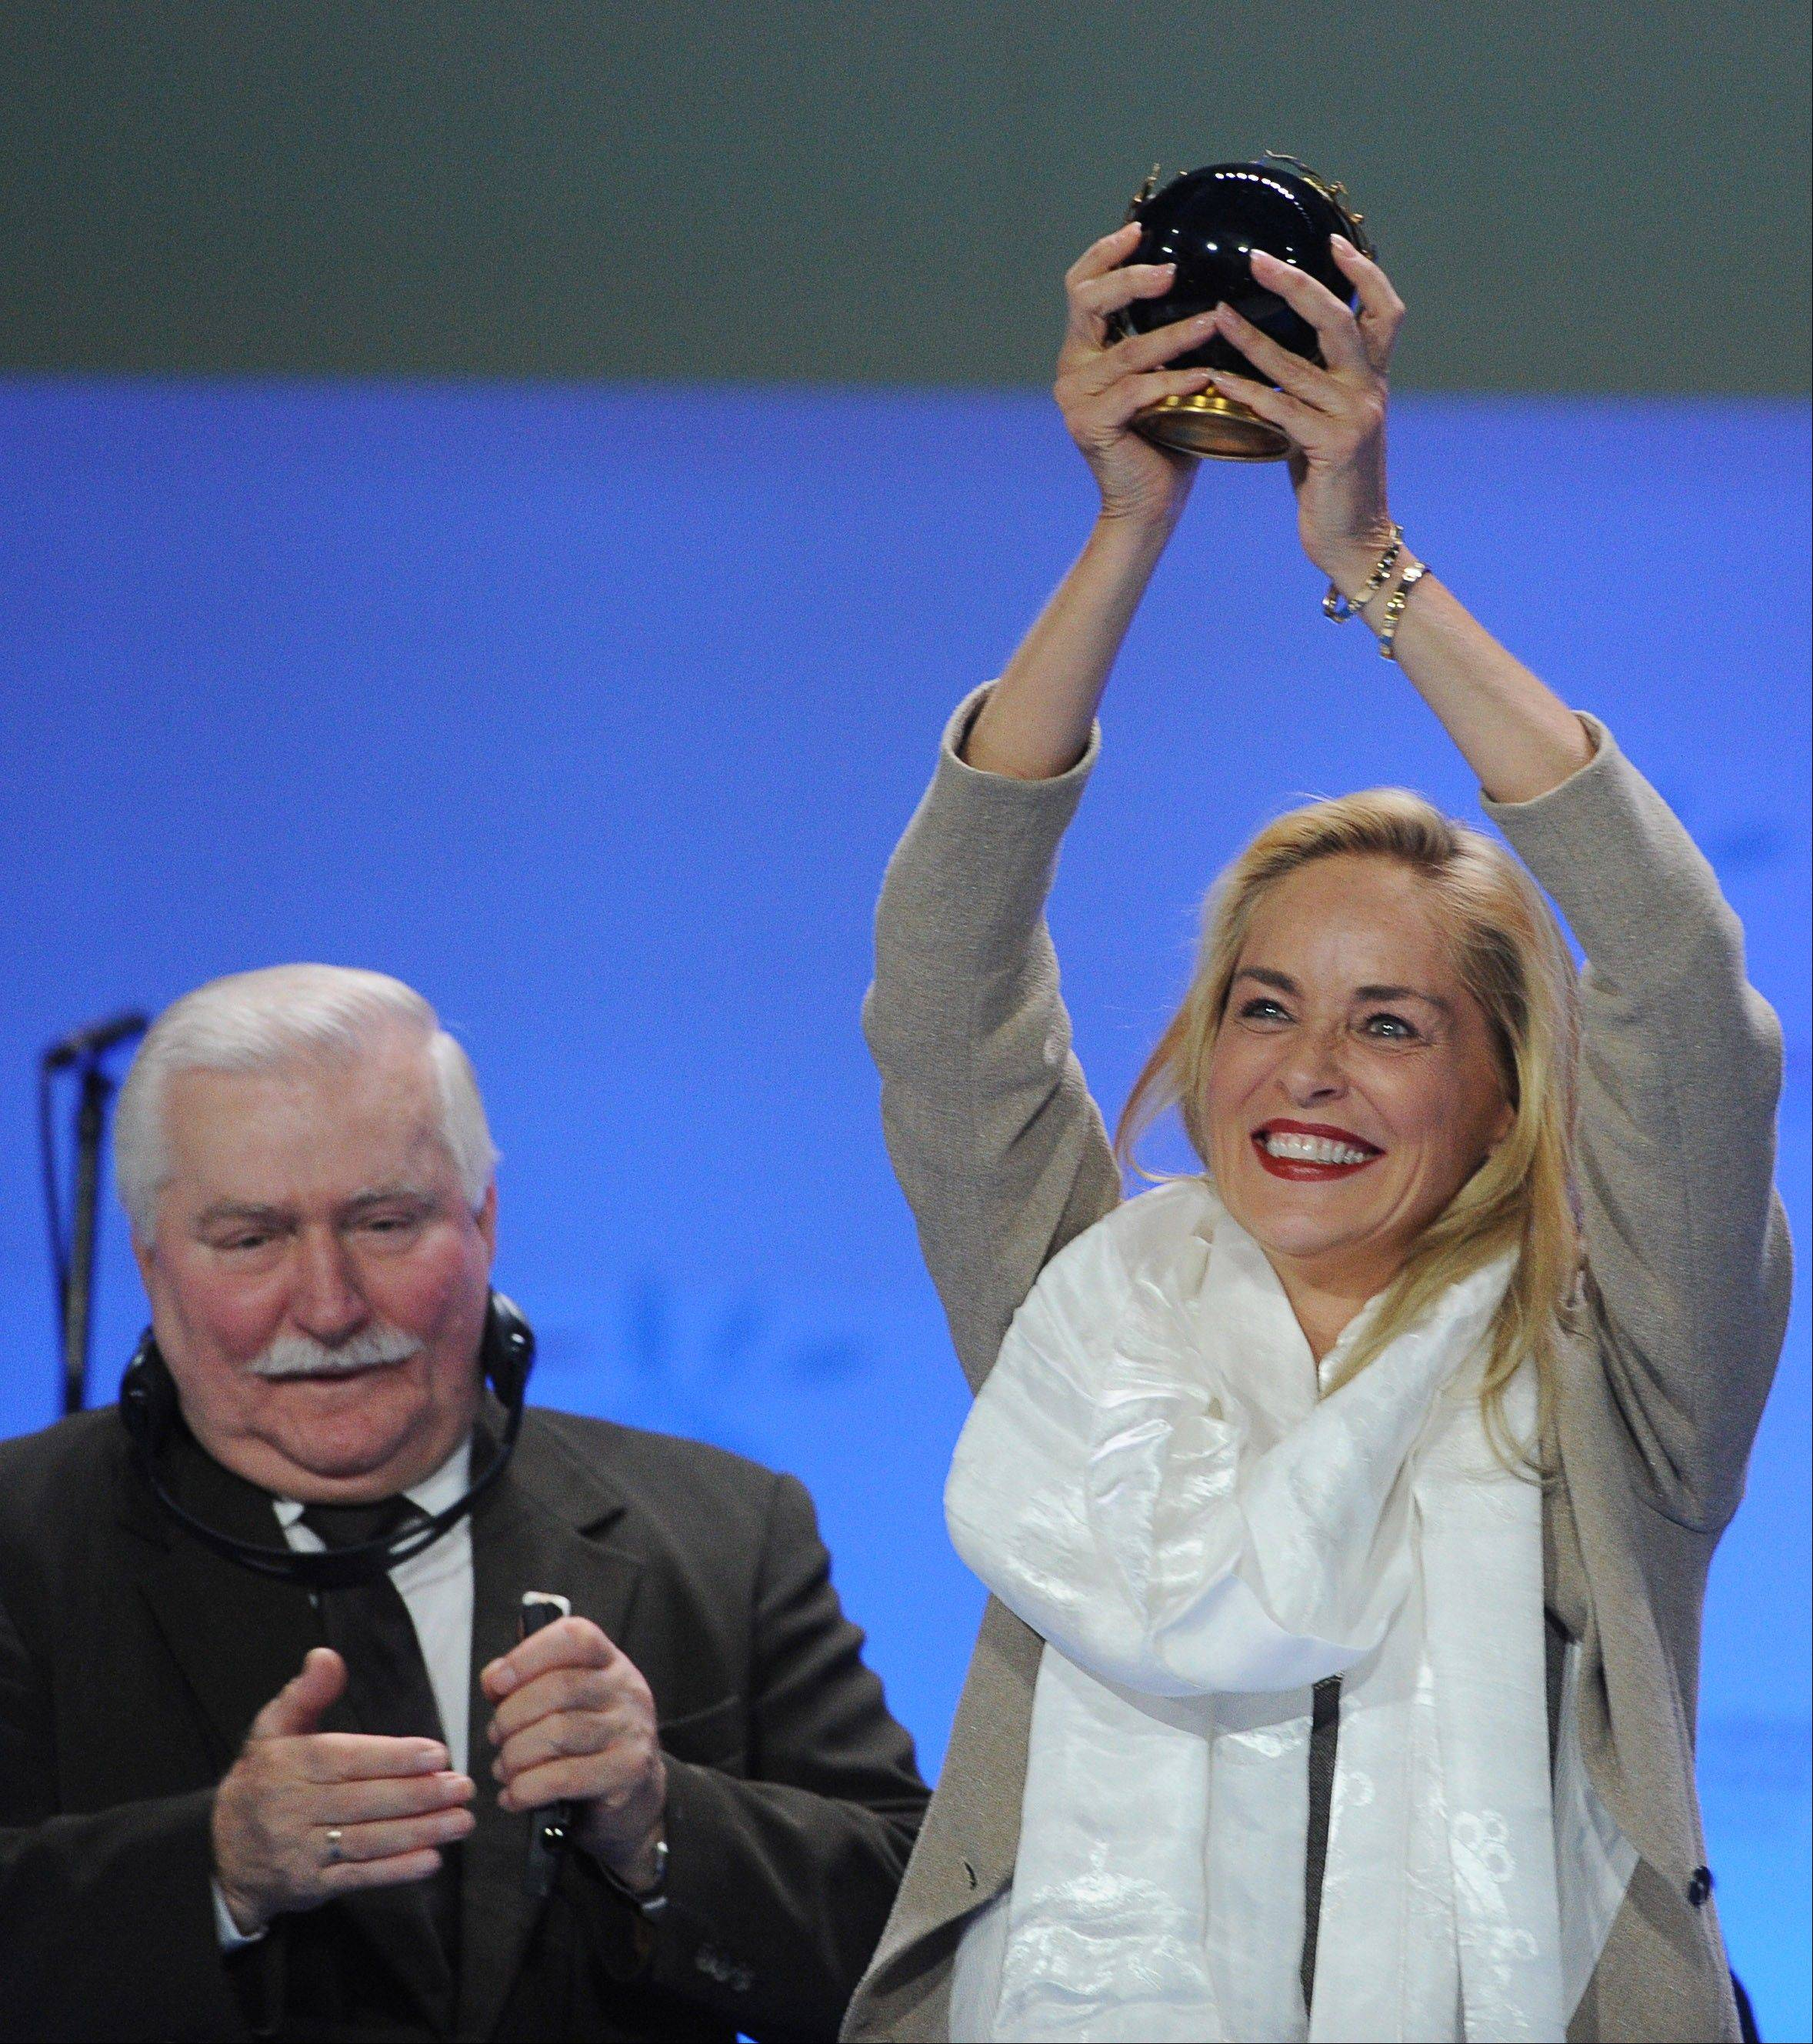 Actress Sharon Stone raises the Summit's Peace Prize she just received Wednesday from Nobel Peace laureates, as former Polish President Lech Walesa applauds during the award receiving ceremony in Warsaw, Poland. Stone was awarded with the prize in recognition of her activities against HIV and AIDS.